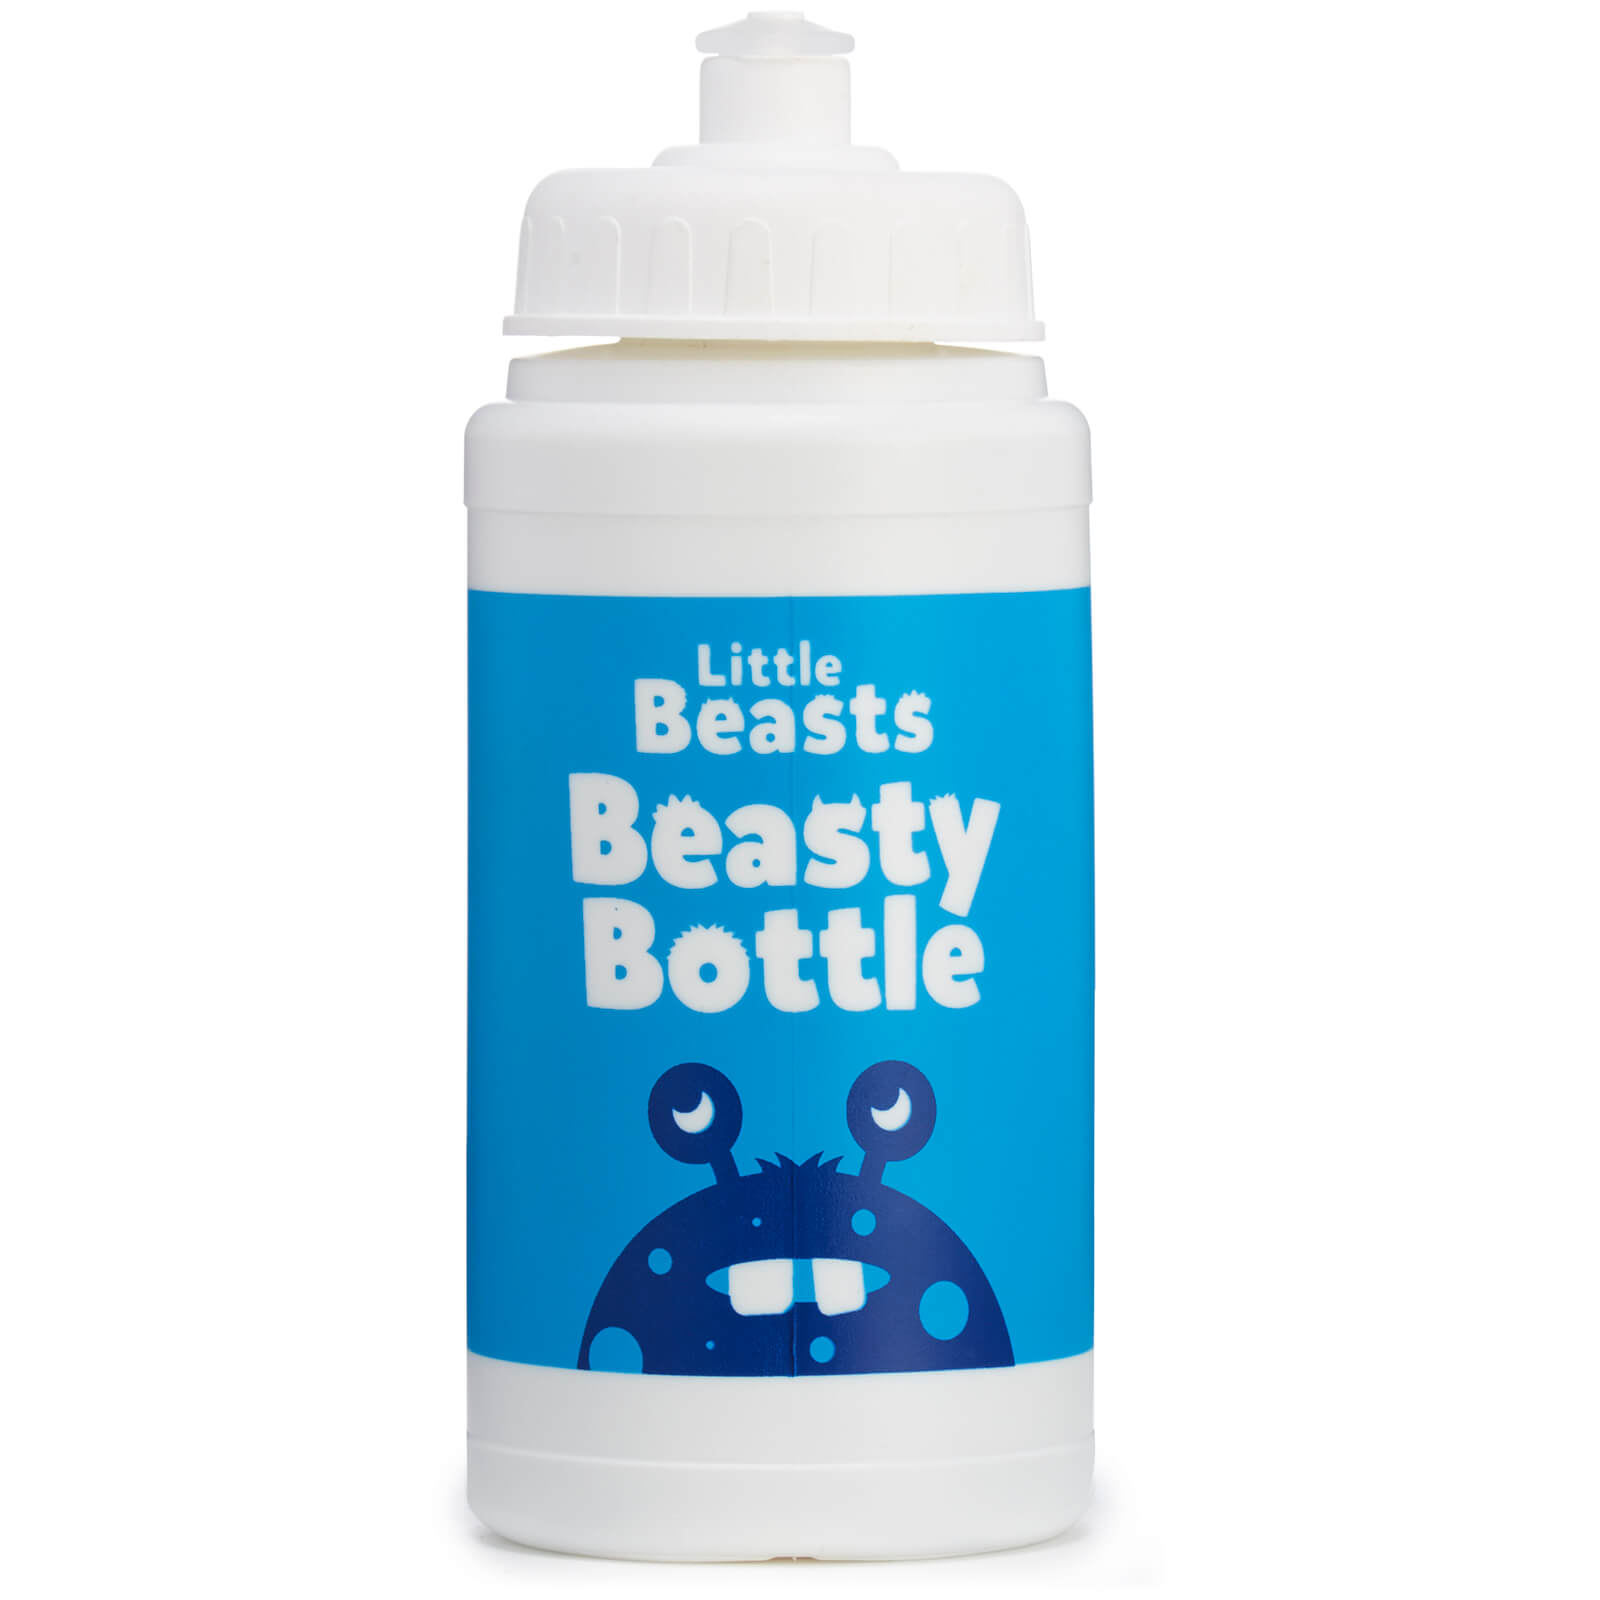 Boy's Beasty Bottle